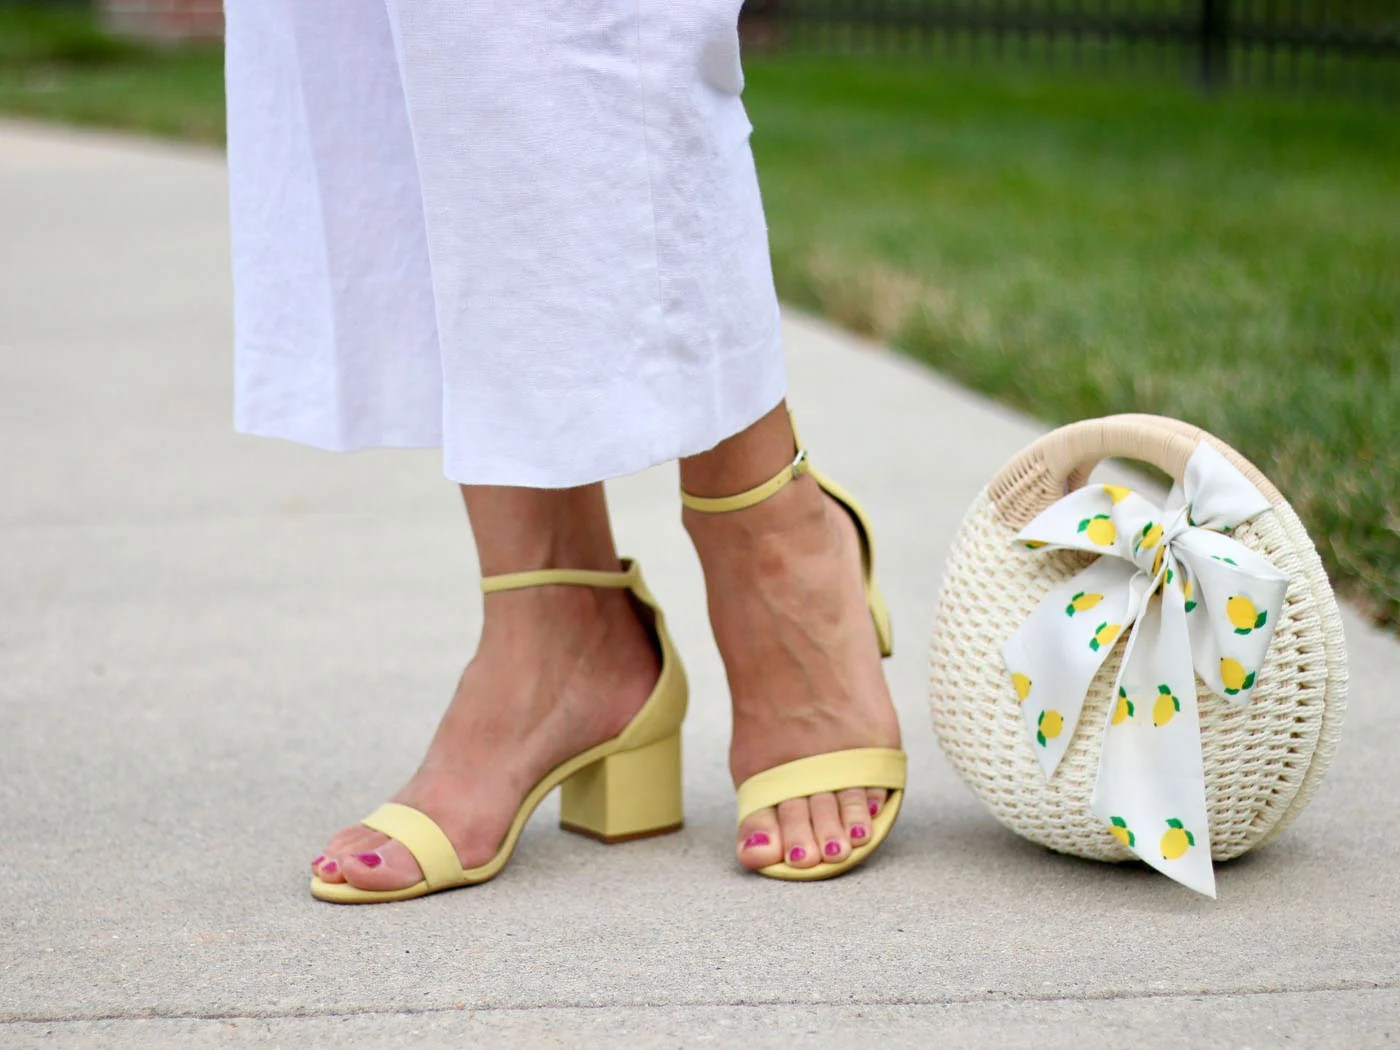 Anthropologie Smocked Shirt, Steve Madden Yellow Sandals, Lemon Print Scarf